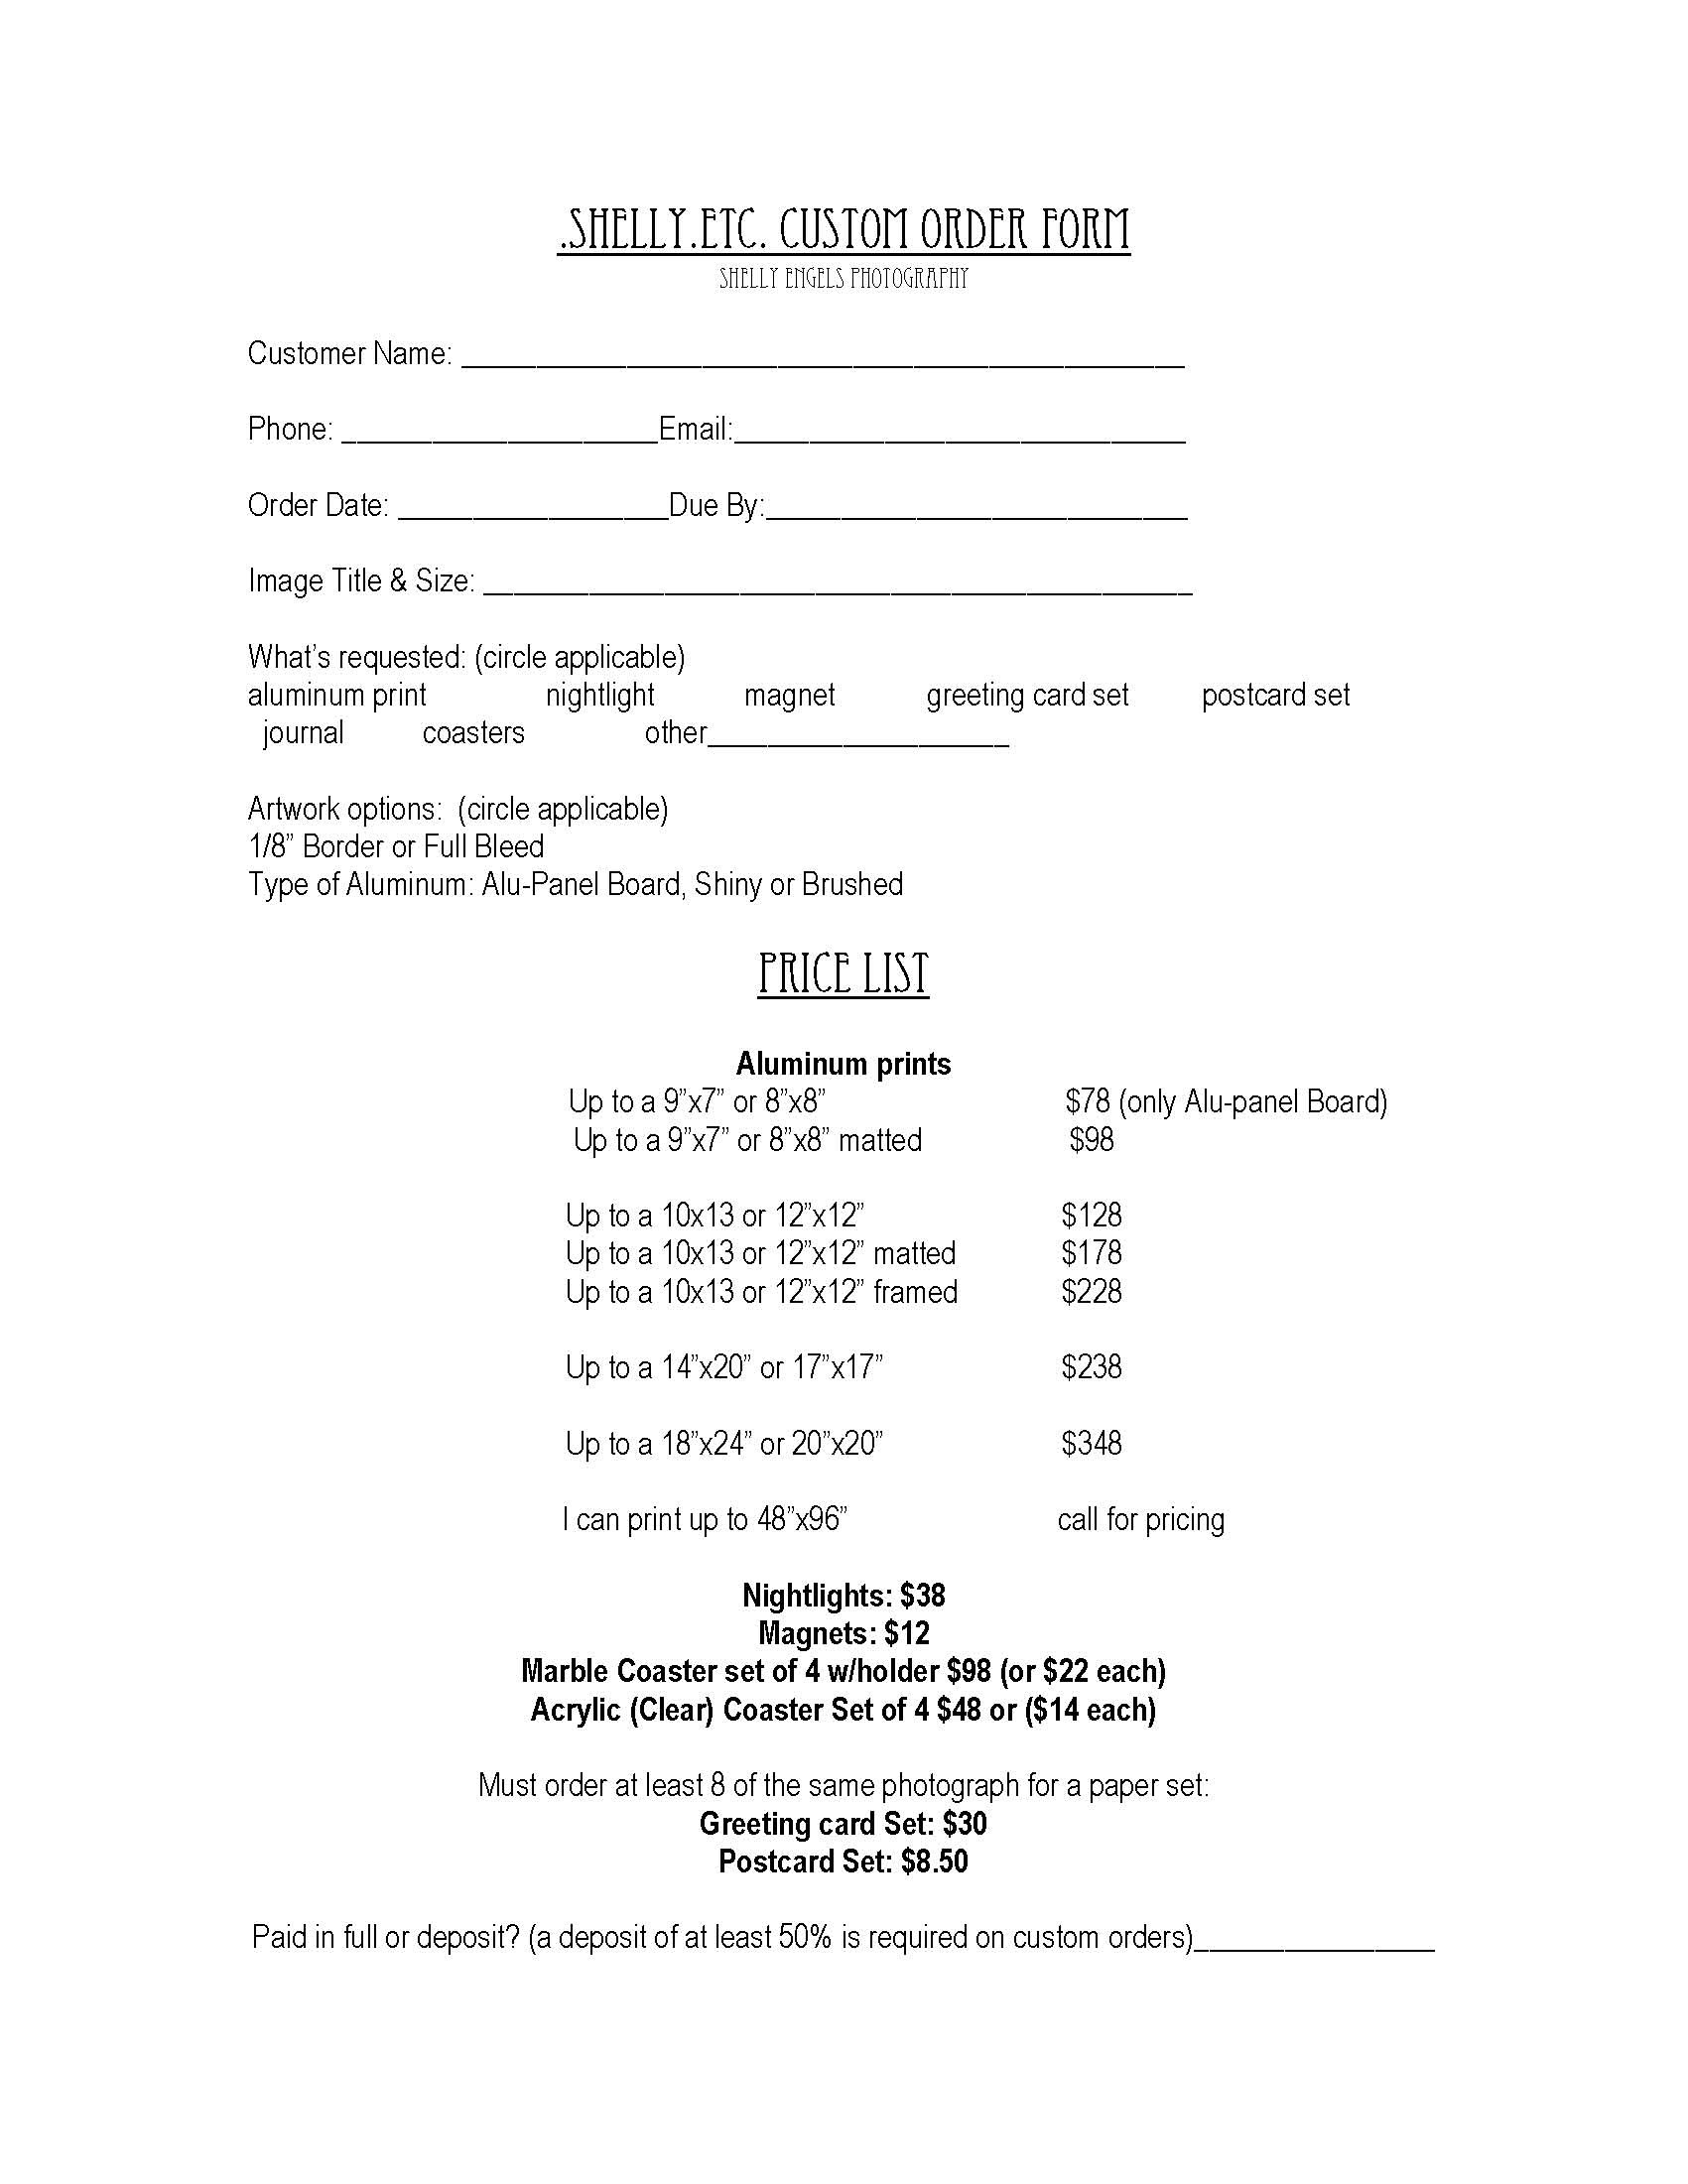 Doc12401754 Format of Leave Form Doc12401754 Leave Form – Example of Leave Form